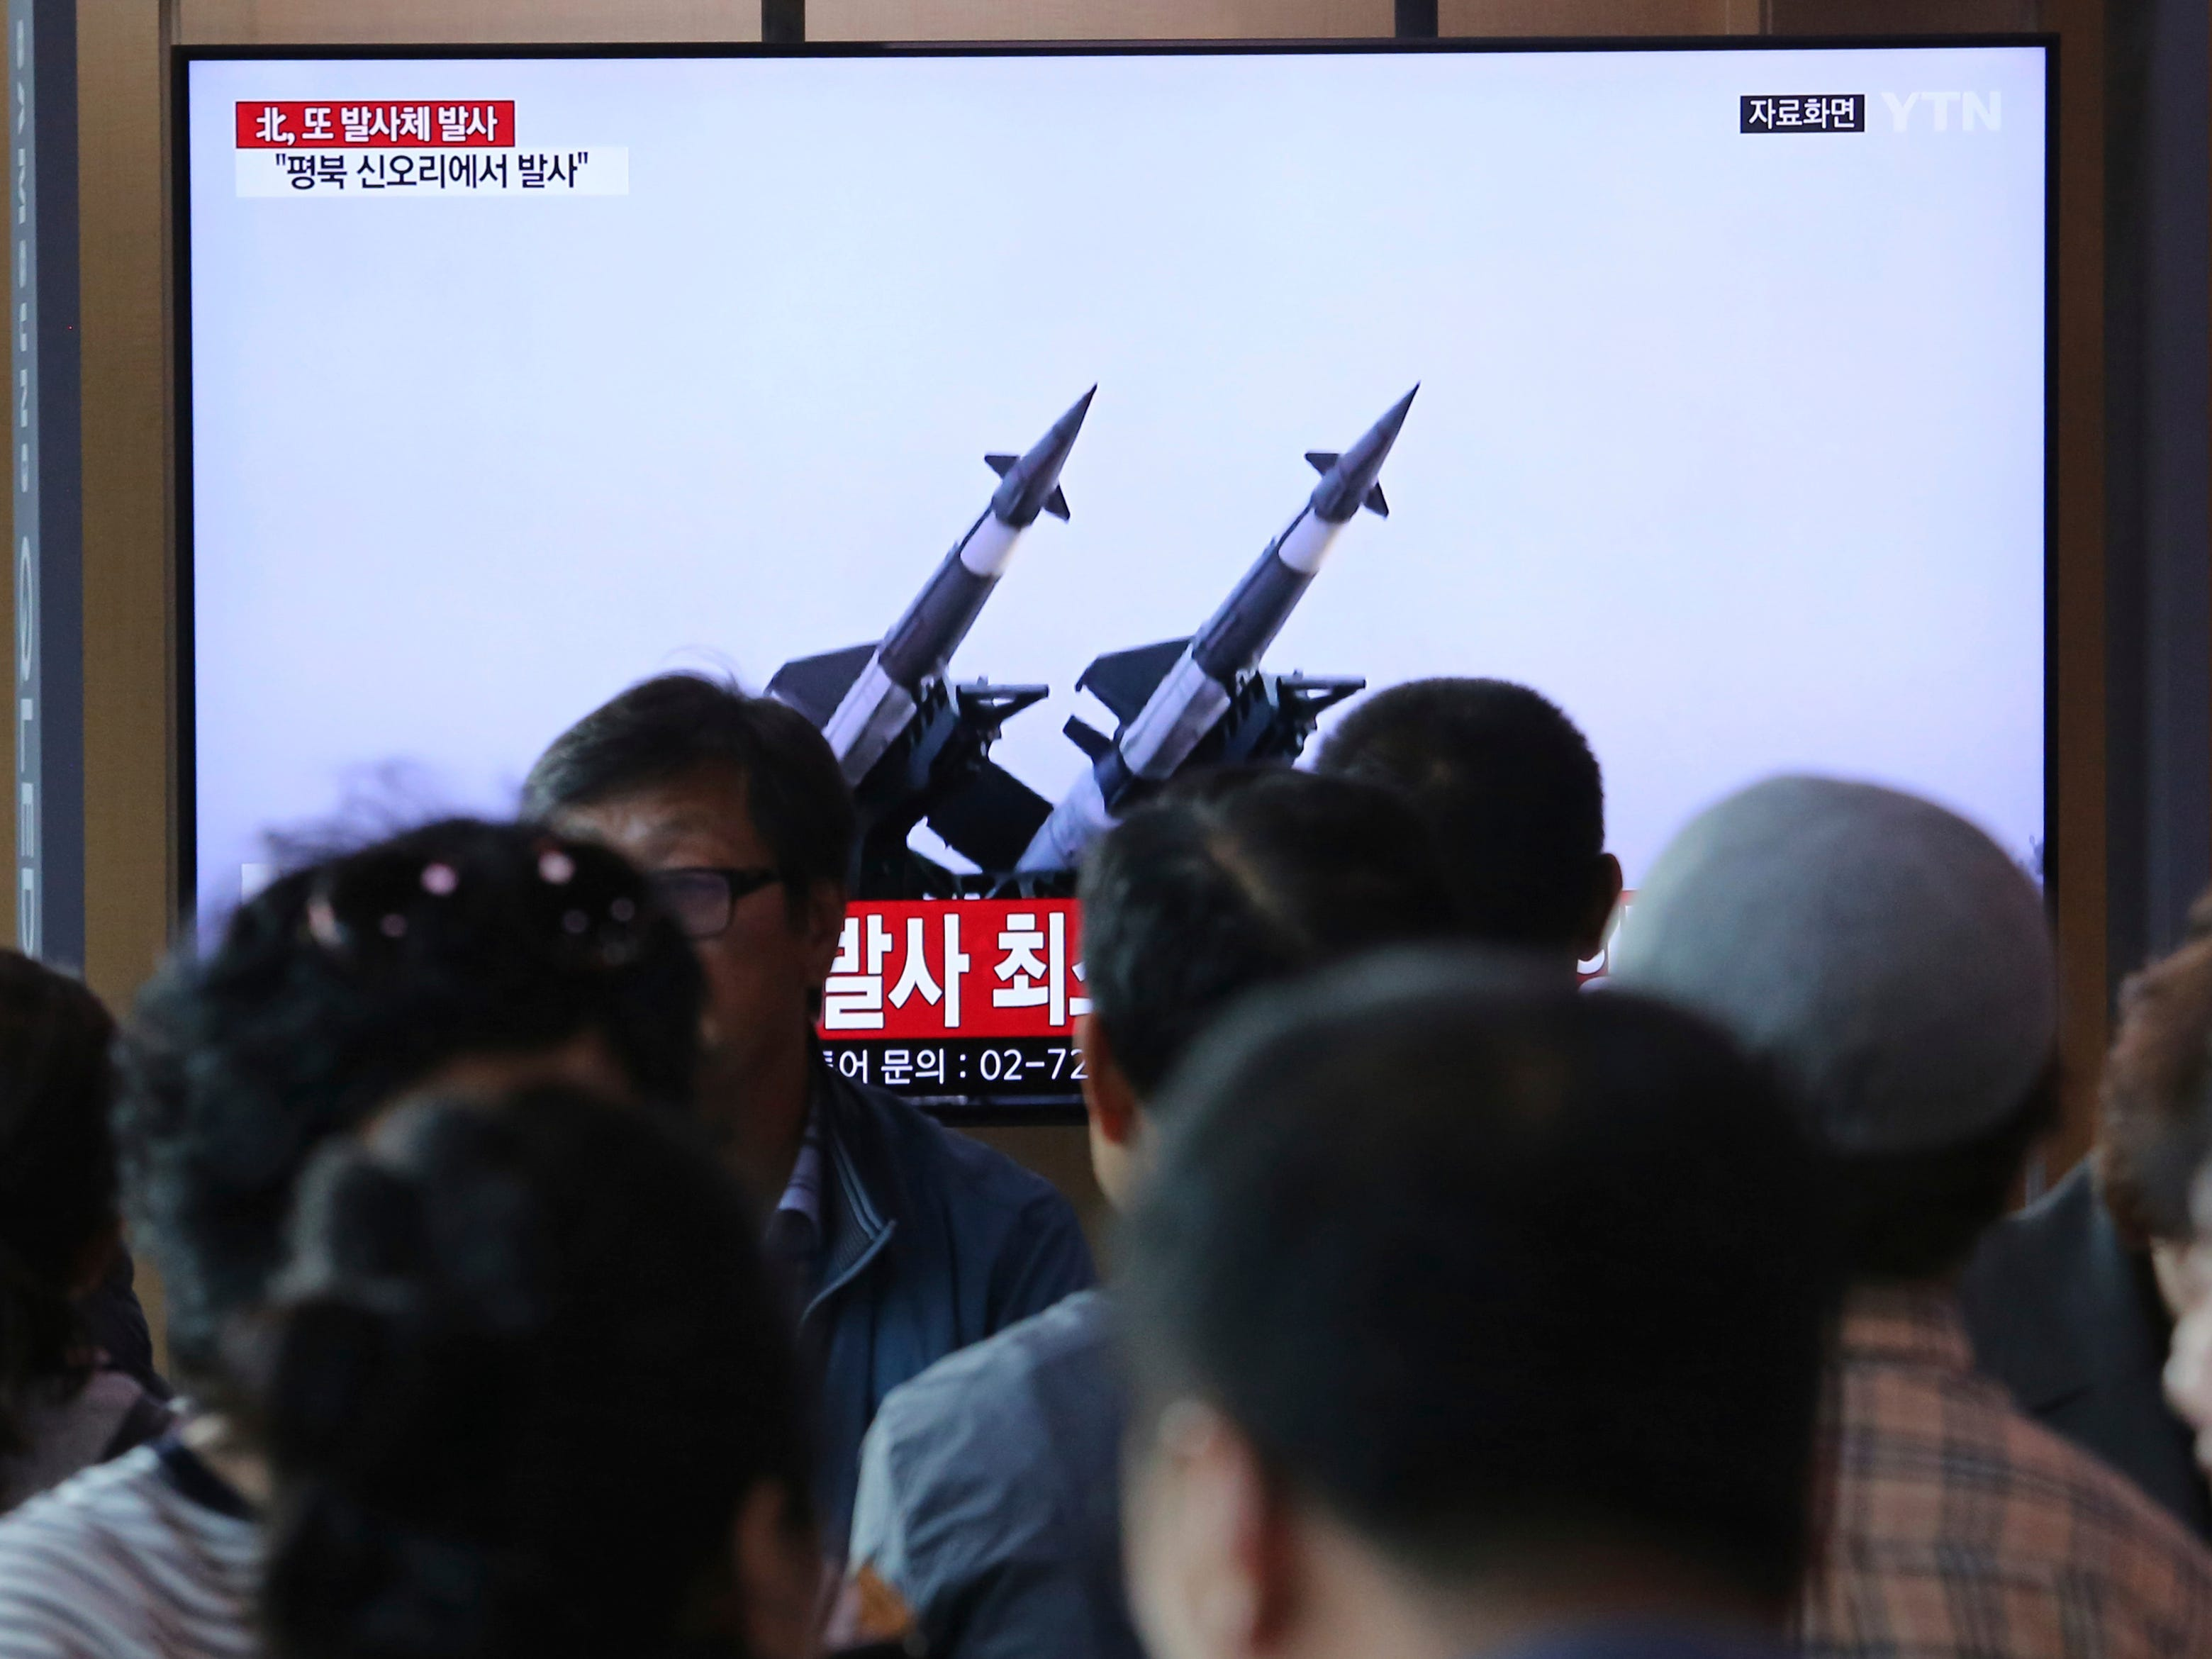 North Korea launches second projectile in less than a week